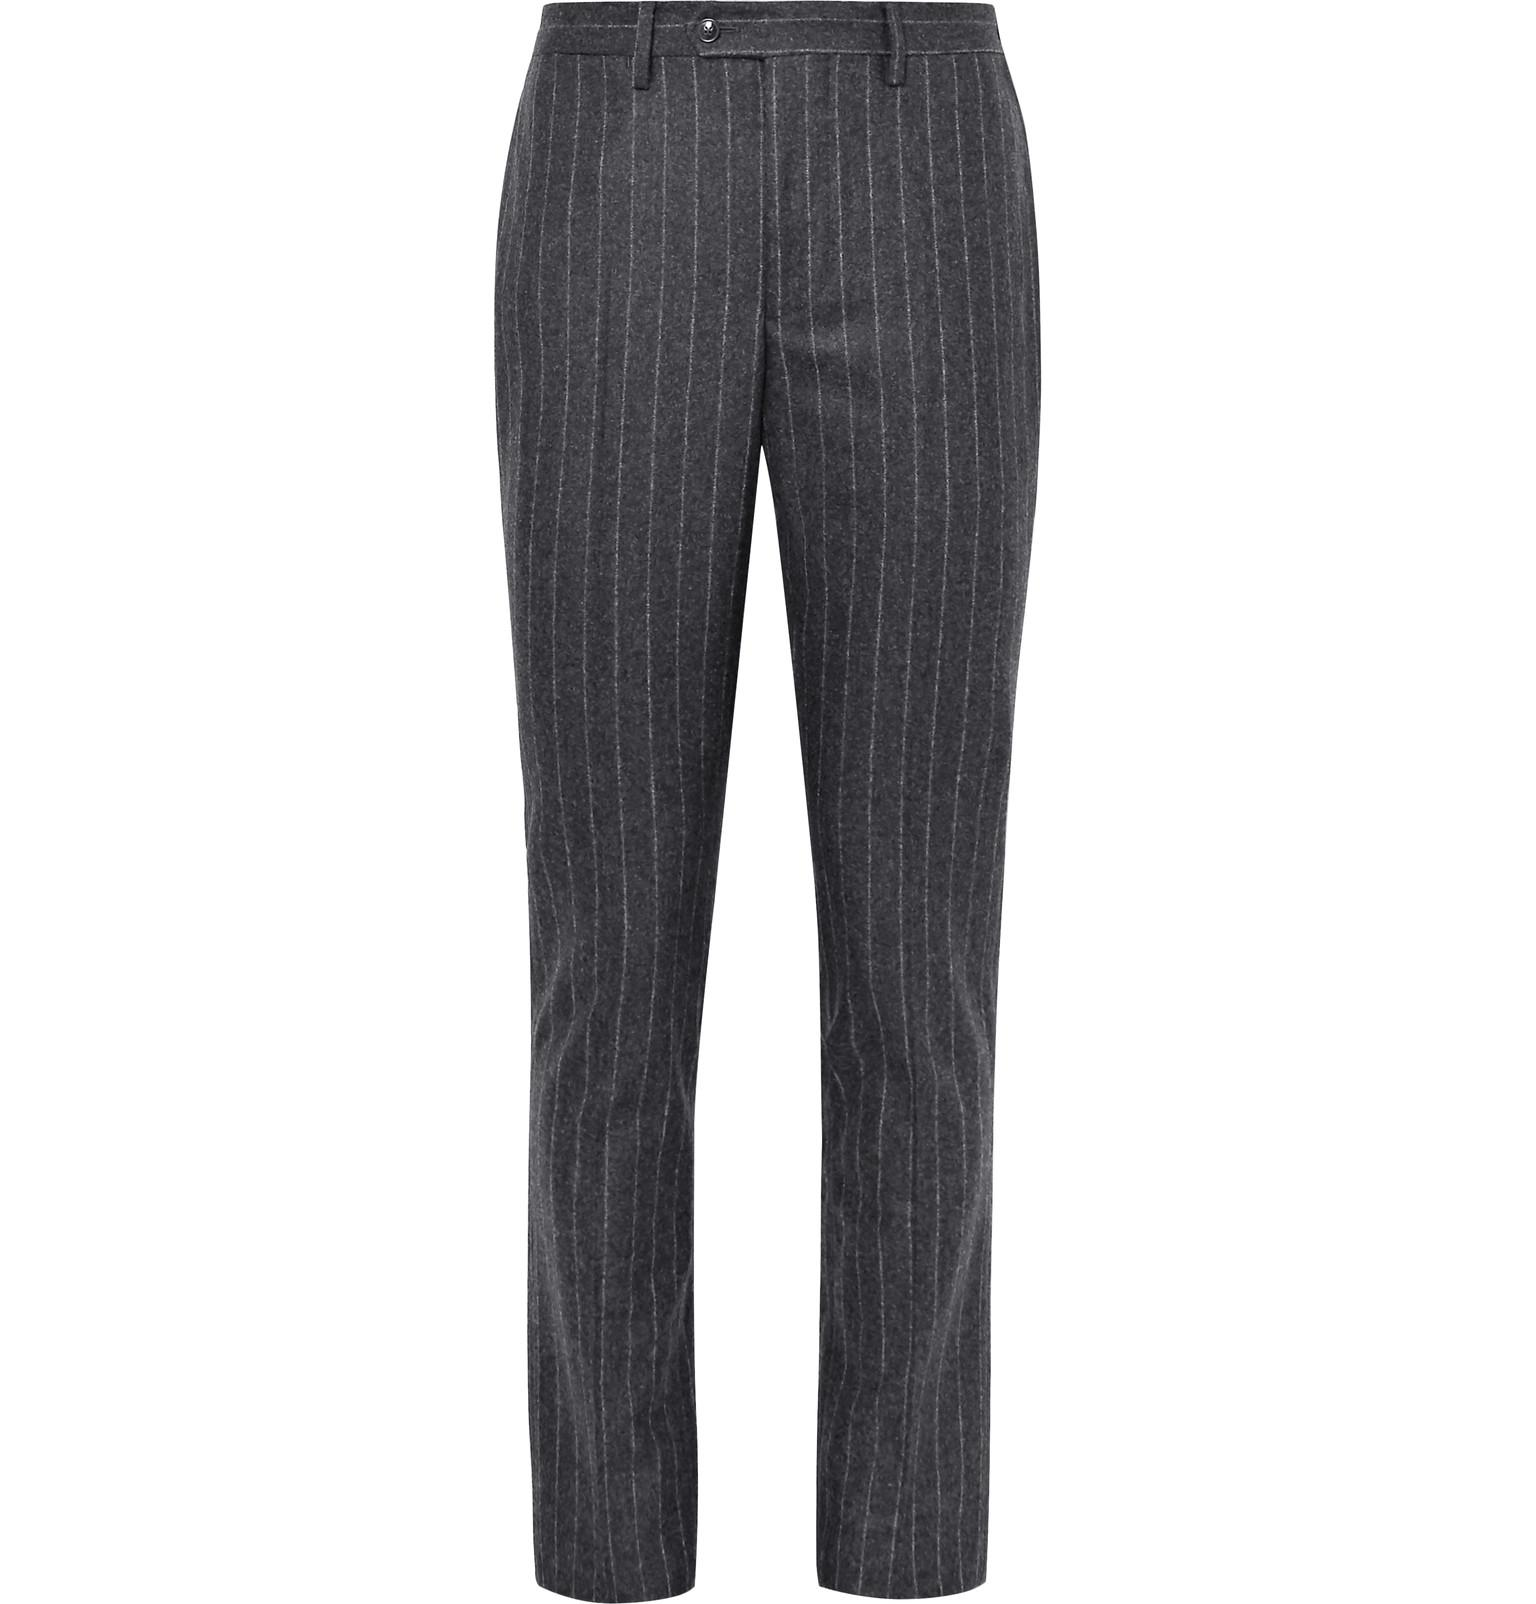 Slim-fit Pinstriped Brushed Wool Trousers Officine Generale Cheap For Cheap ZhlHfo819M